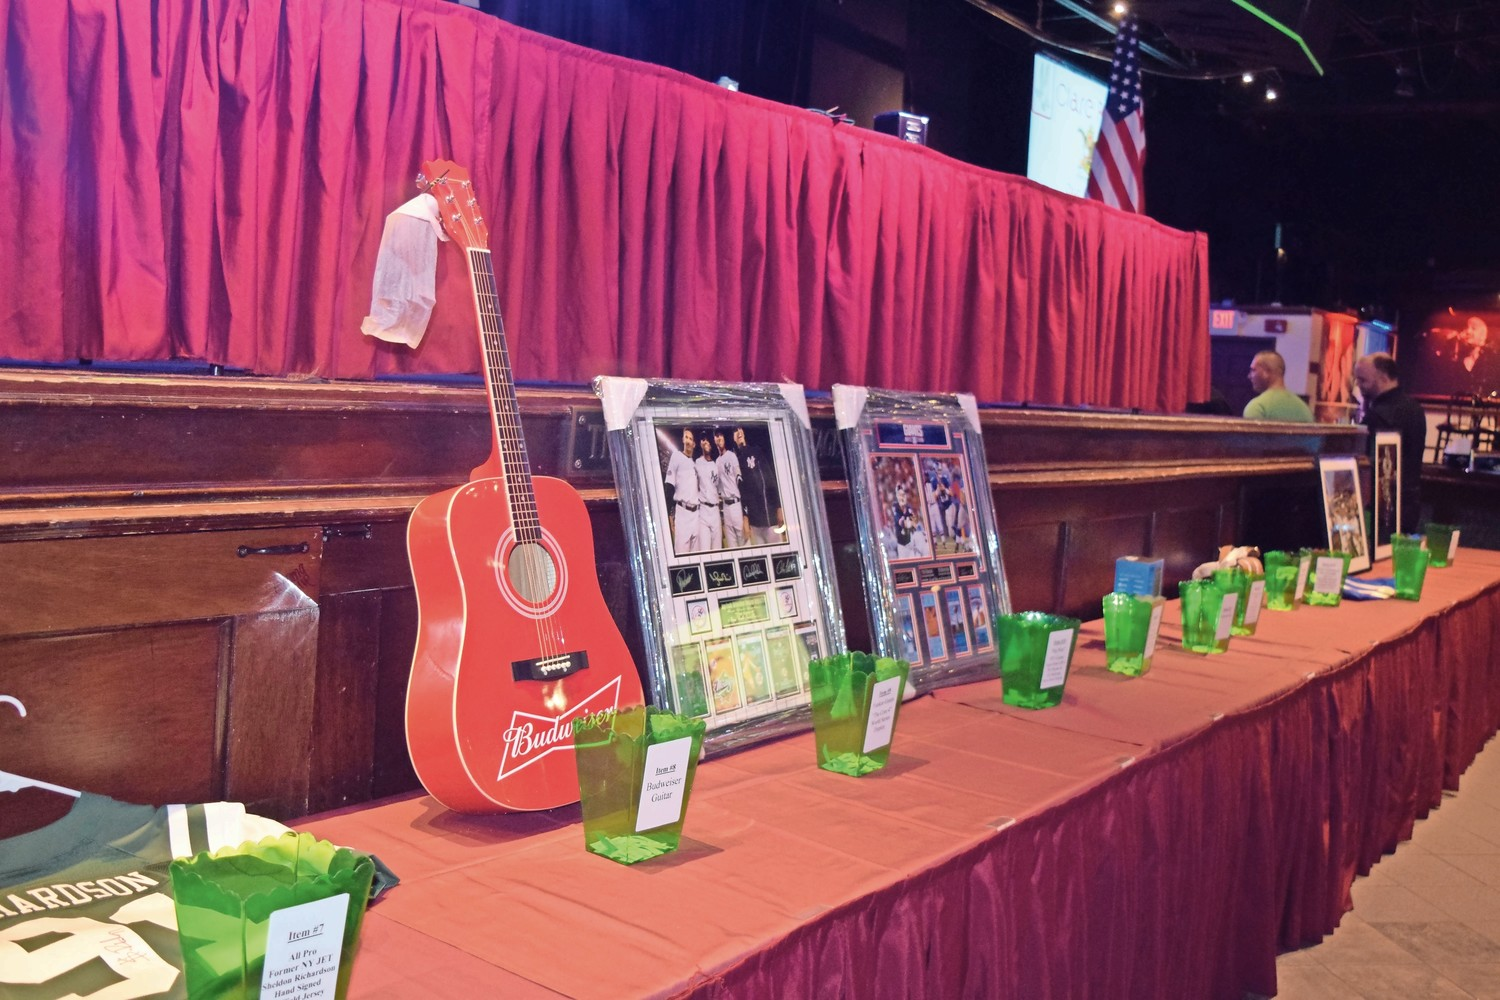 Raffle and auction items, including Michael Kors handbags and football memorabilia, were provided by the John Theissen Children's Foundation.